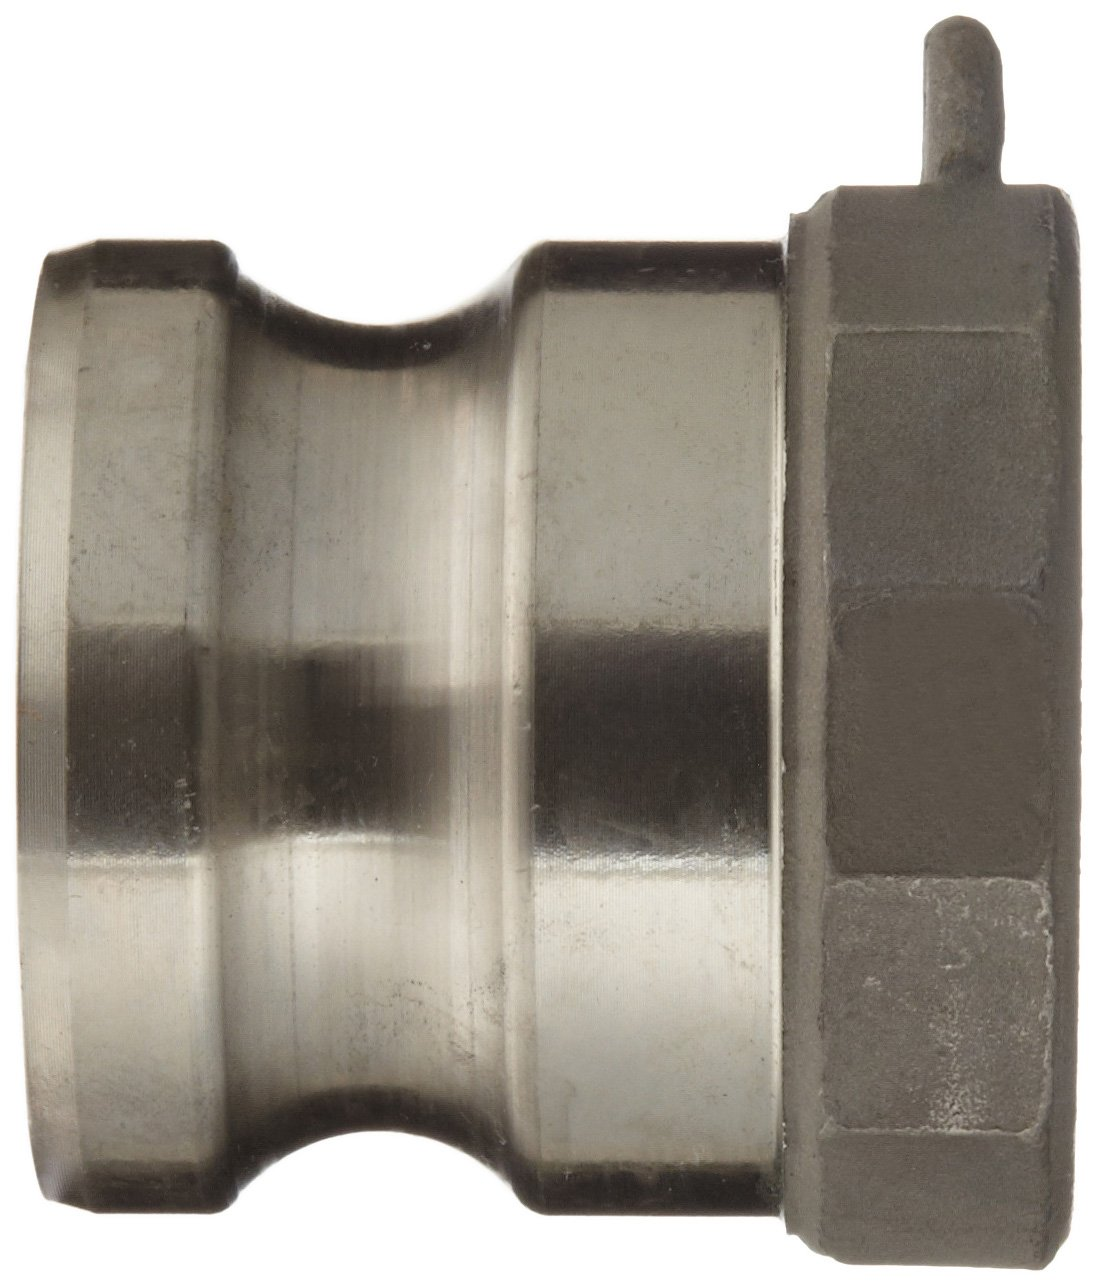 Dixon 600-A-SS Stainless Steel 316 Boss-Lock Type A Cam and Groove Hose Fitting 6 Plug x 6 NPT Female